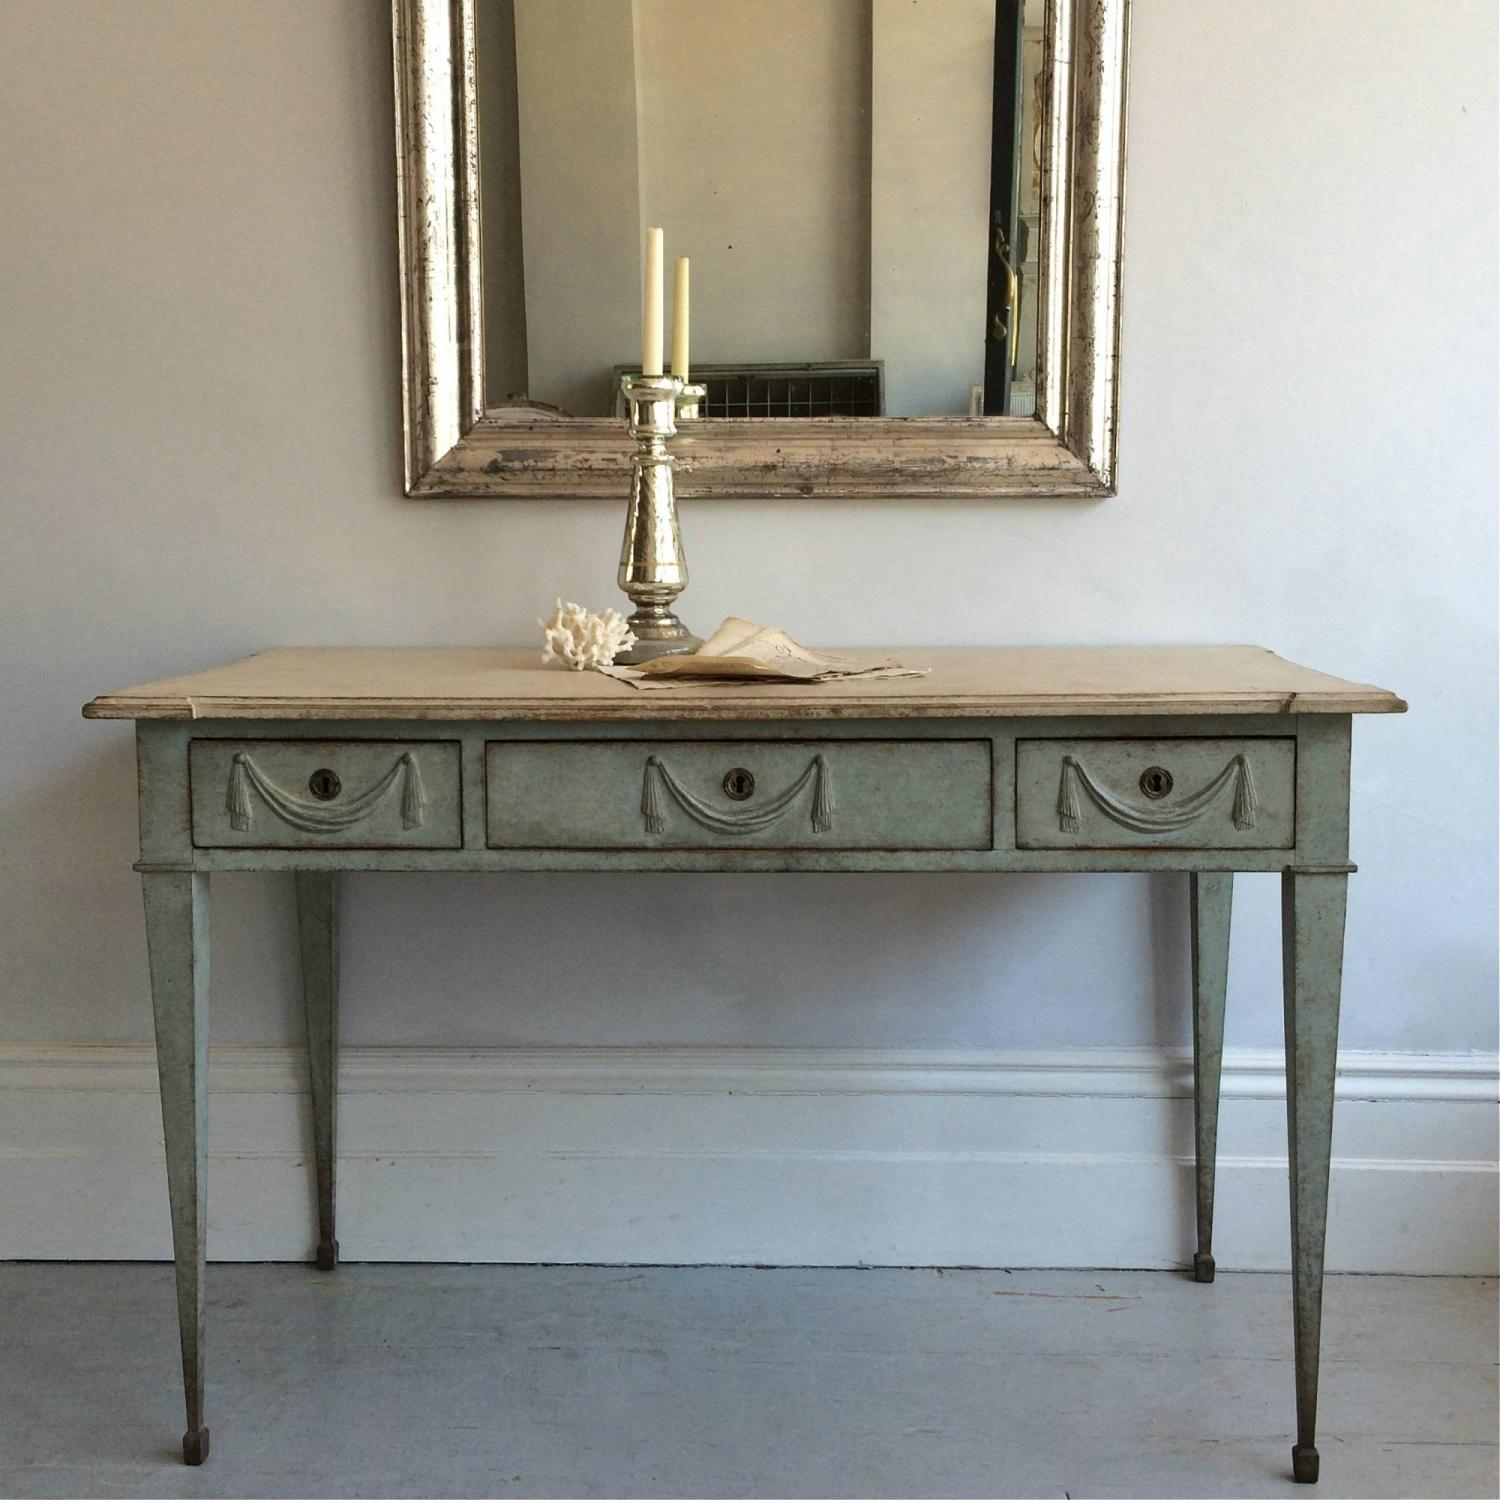 LATE 19TH CENTURY GUSTAVIAN STYLE TABLE OR DESK